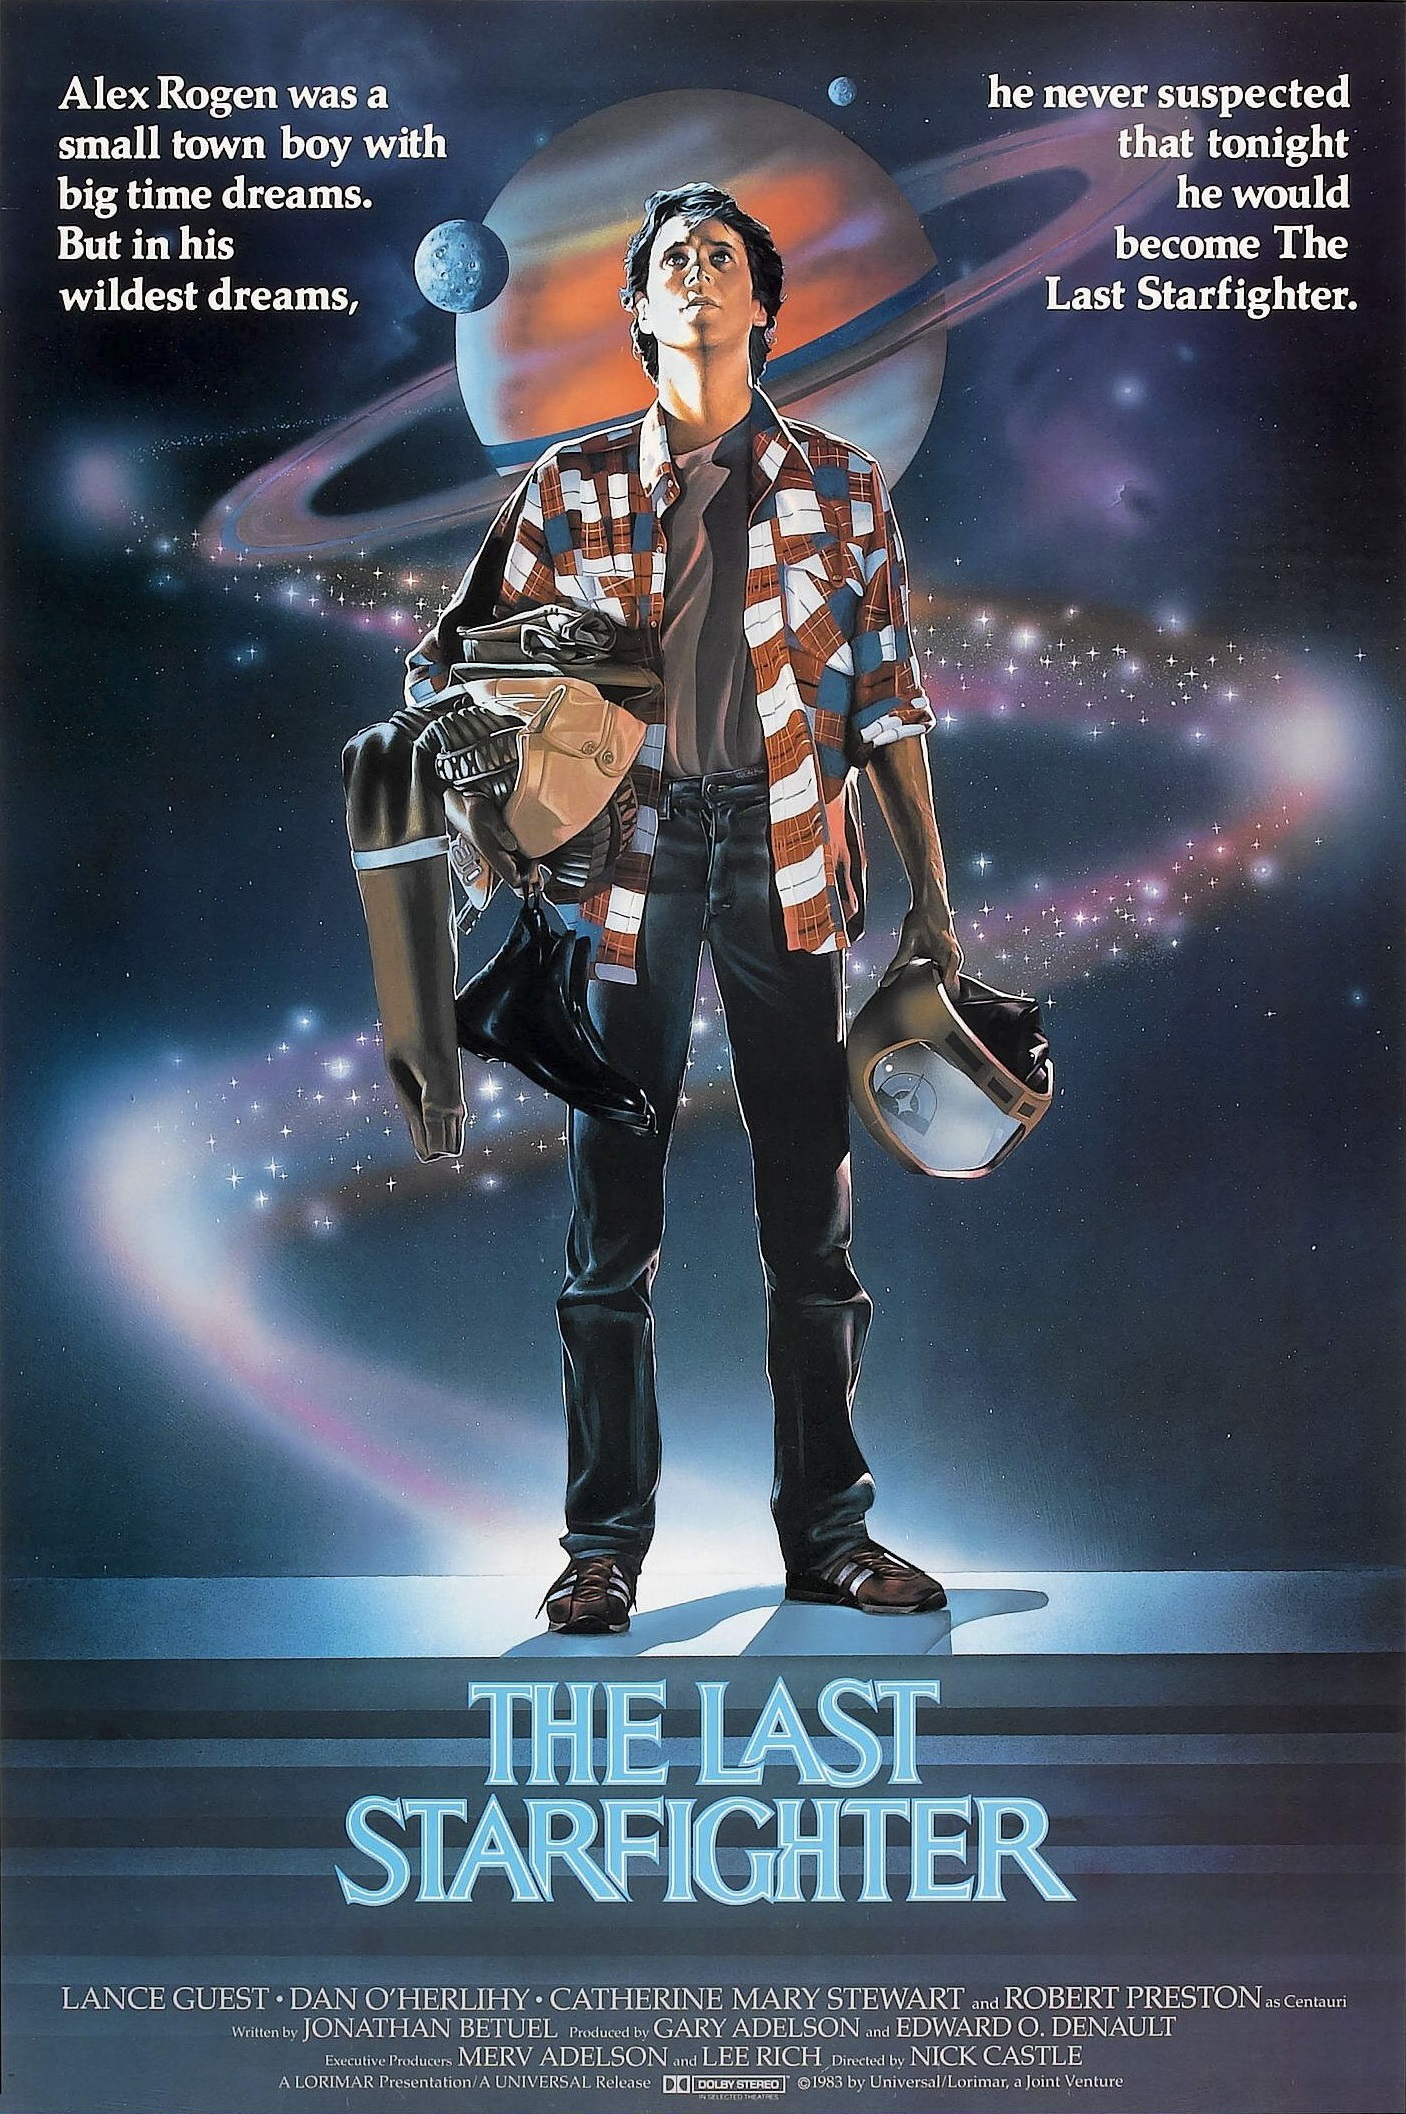 Zero-5 was based on the space shooter scenes in the movie The Last Starfighter.